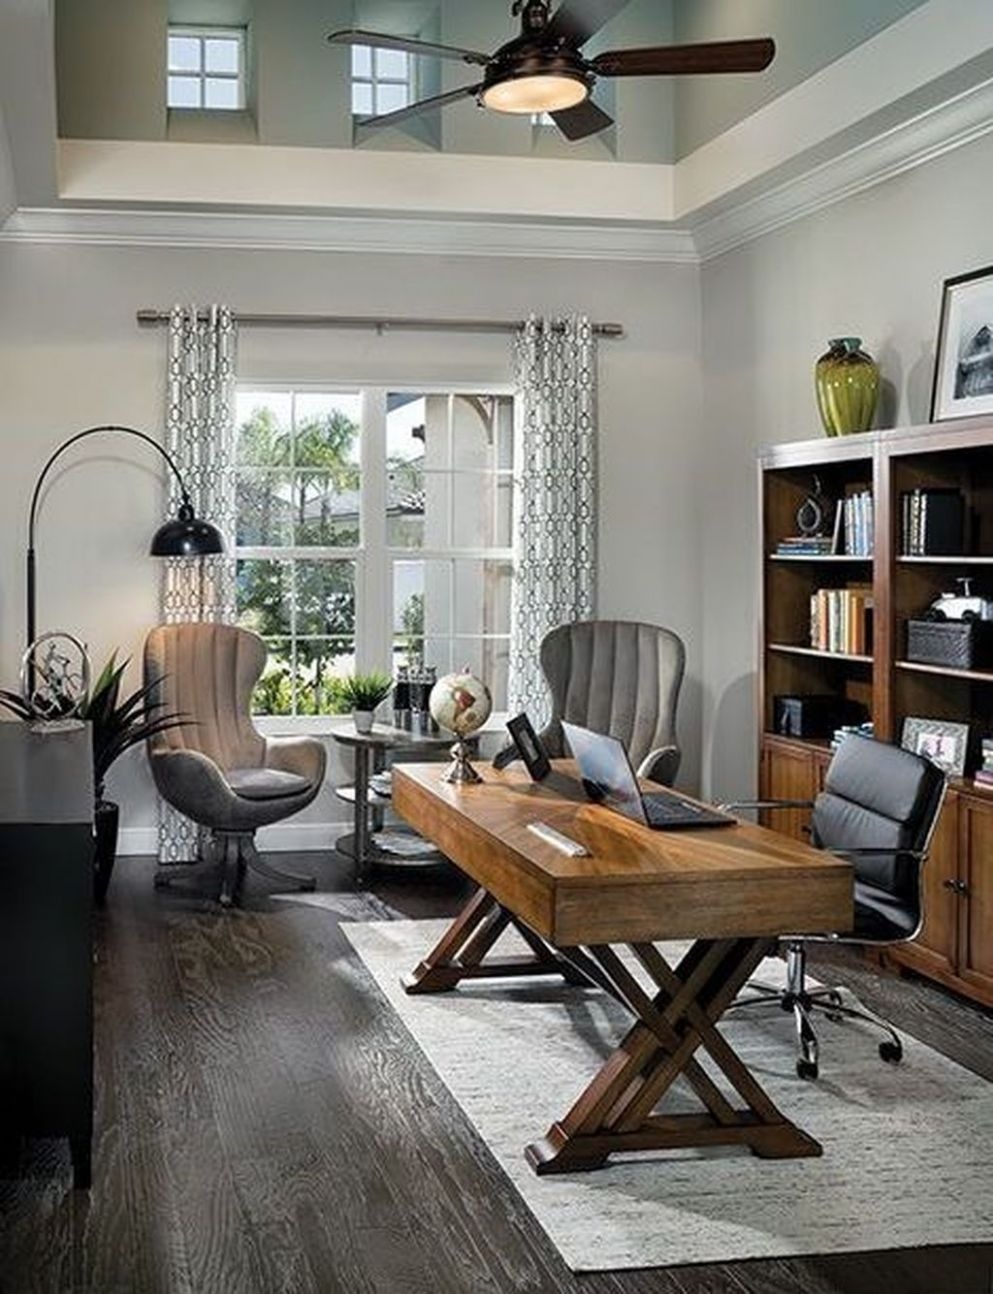 Nice 9 Extraordinary Small Home Office Design Ideas With ..